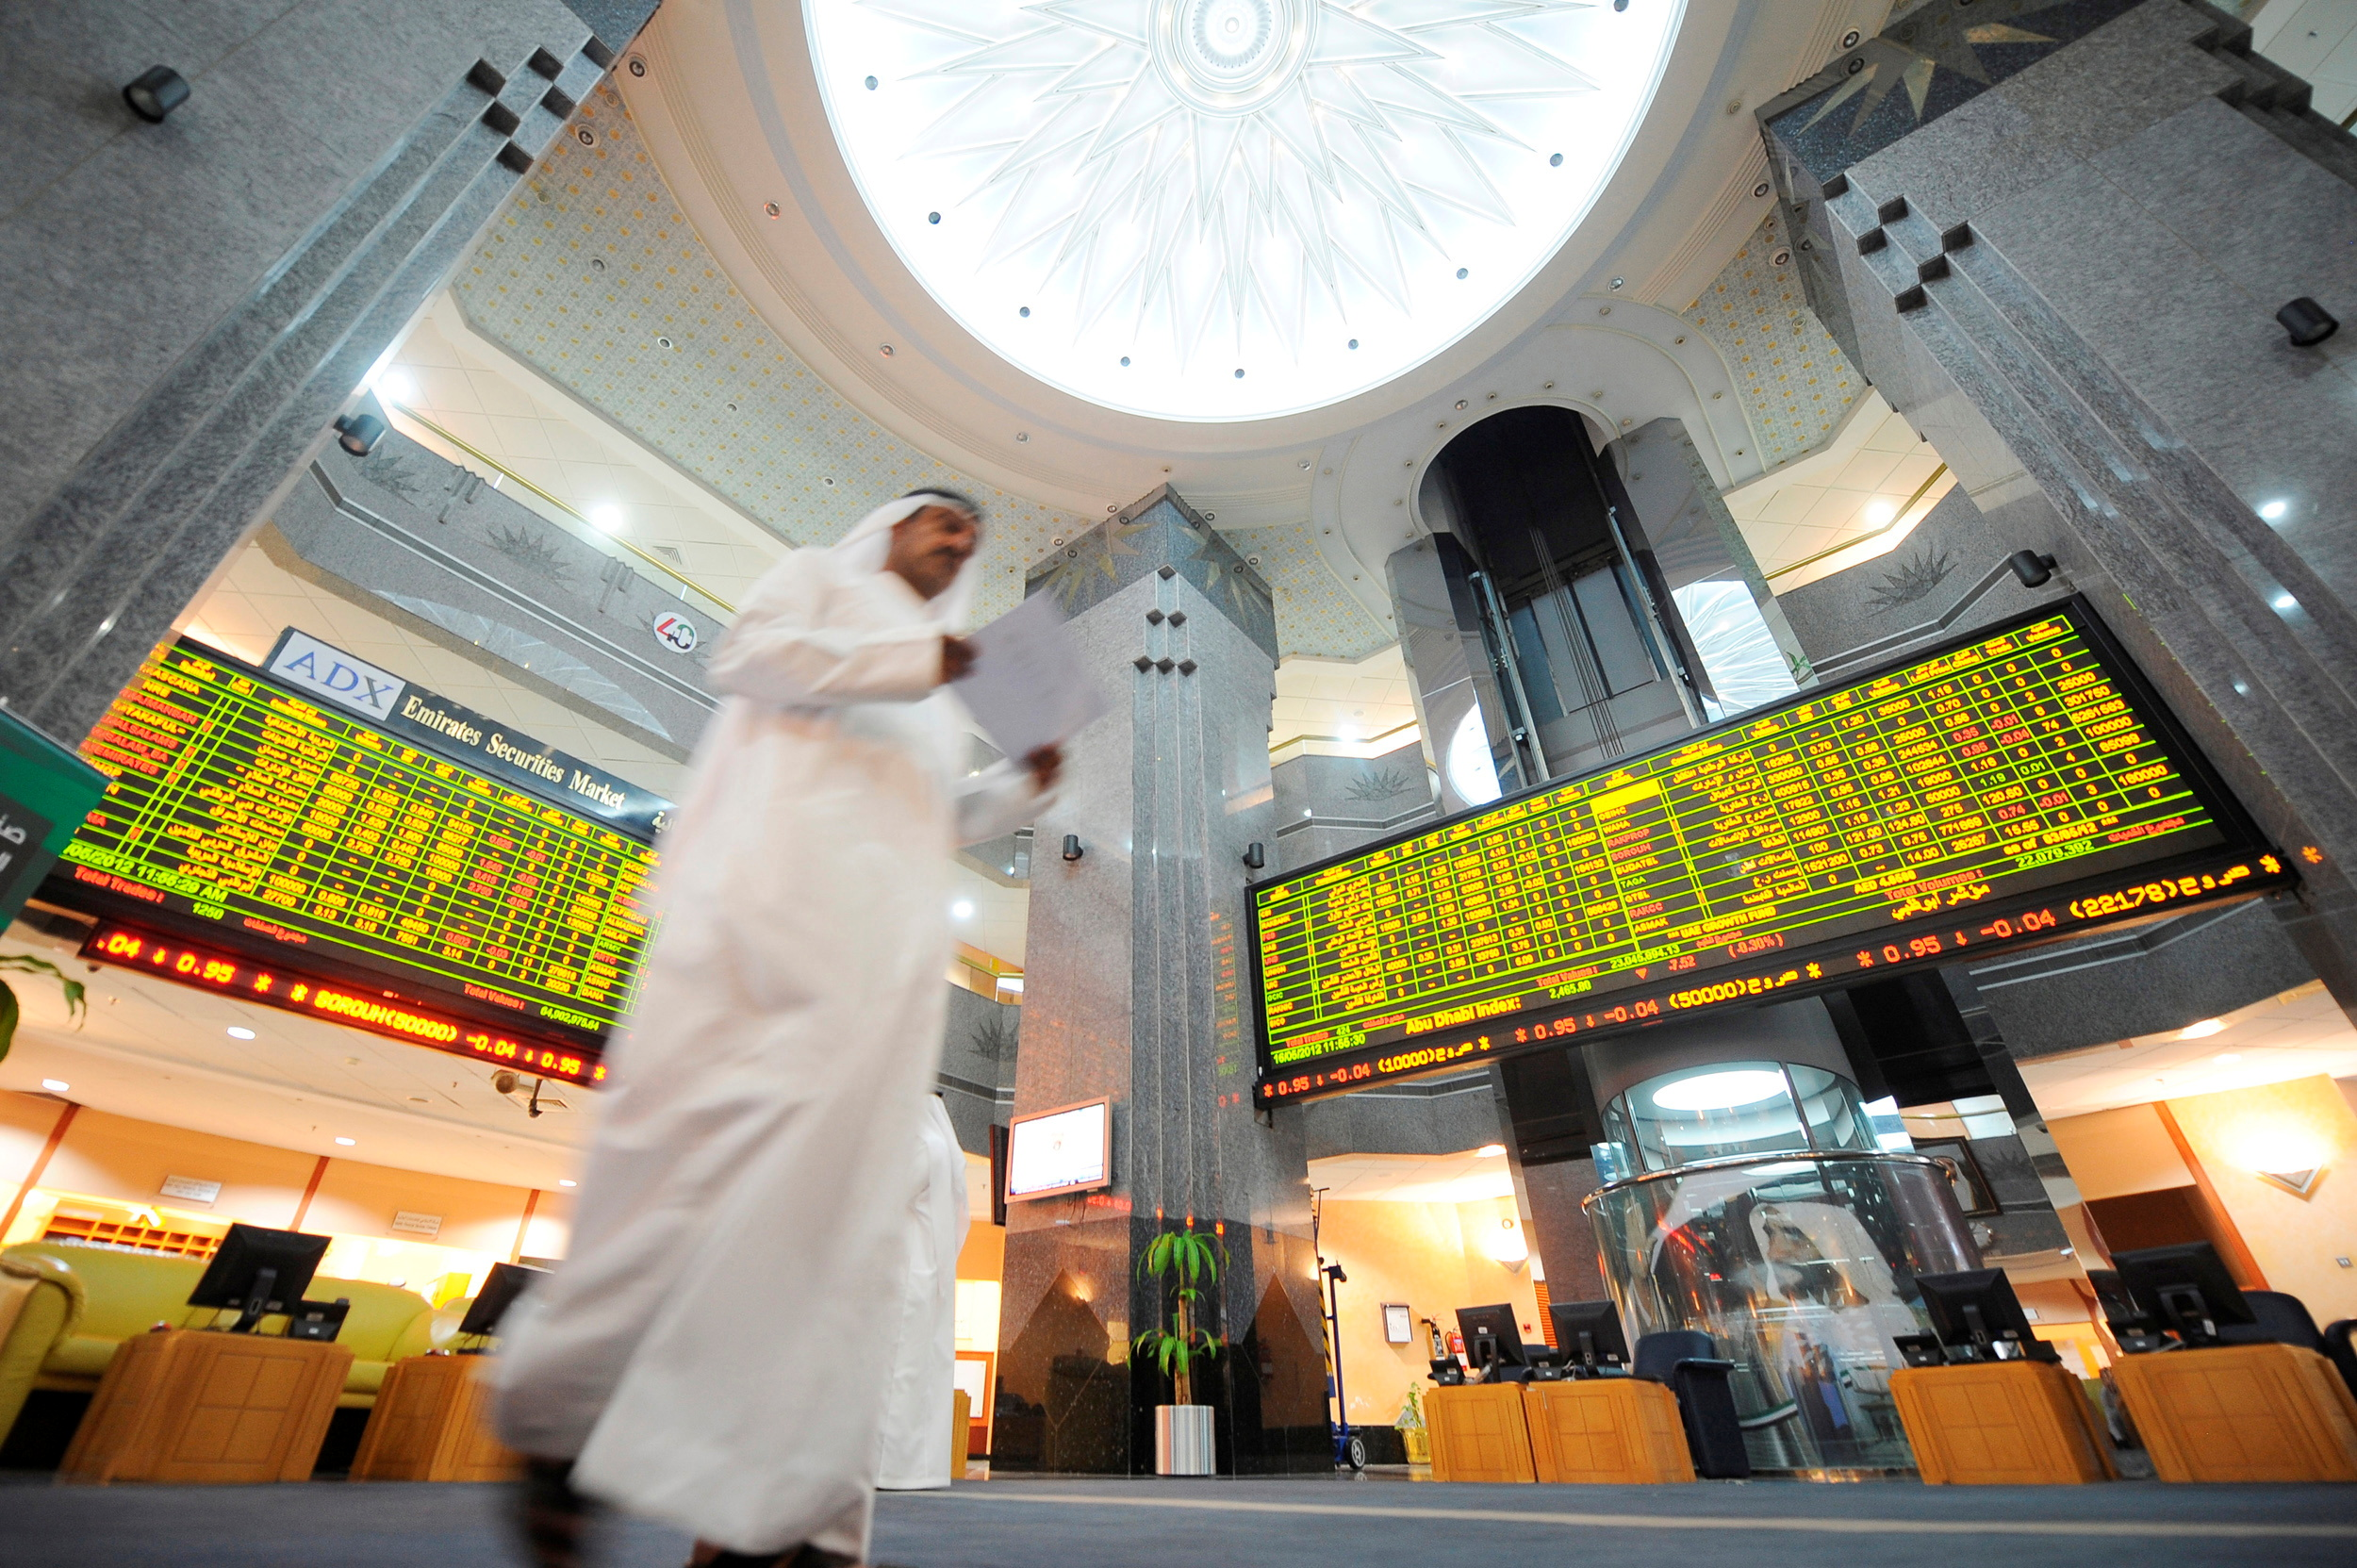 Electronic boards displaying stock information are seen as an investor walks past at the ADX Abu Dhabi Securities Exchange stock market May 16, 2012. REUTERS/Ben Job/File Photo